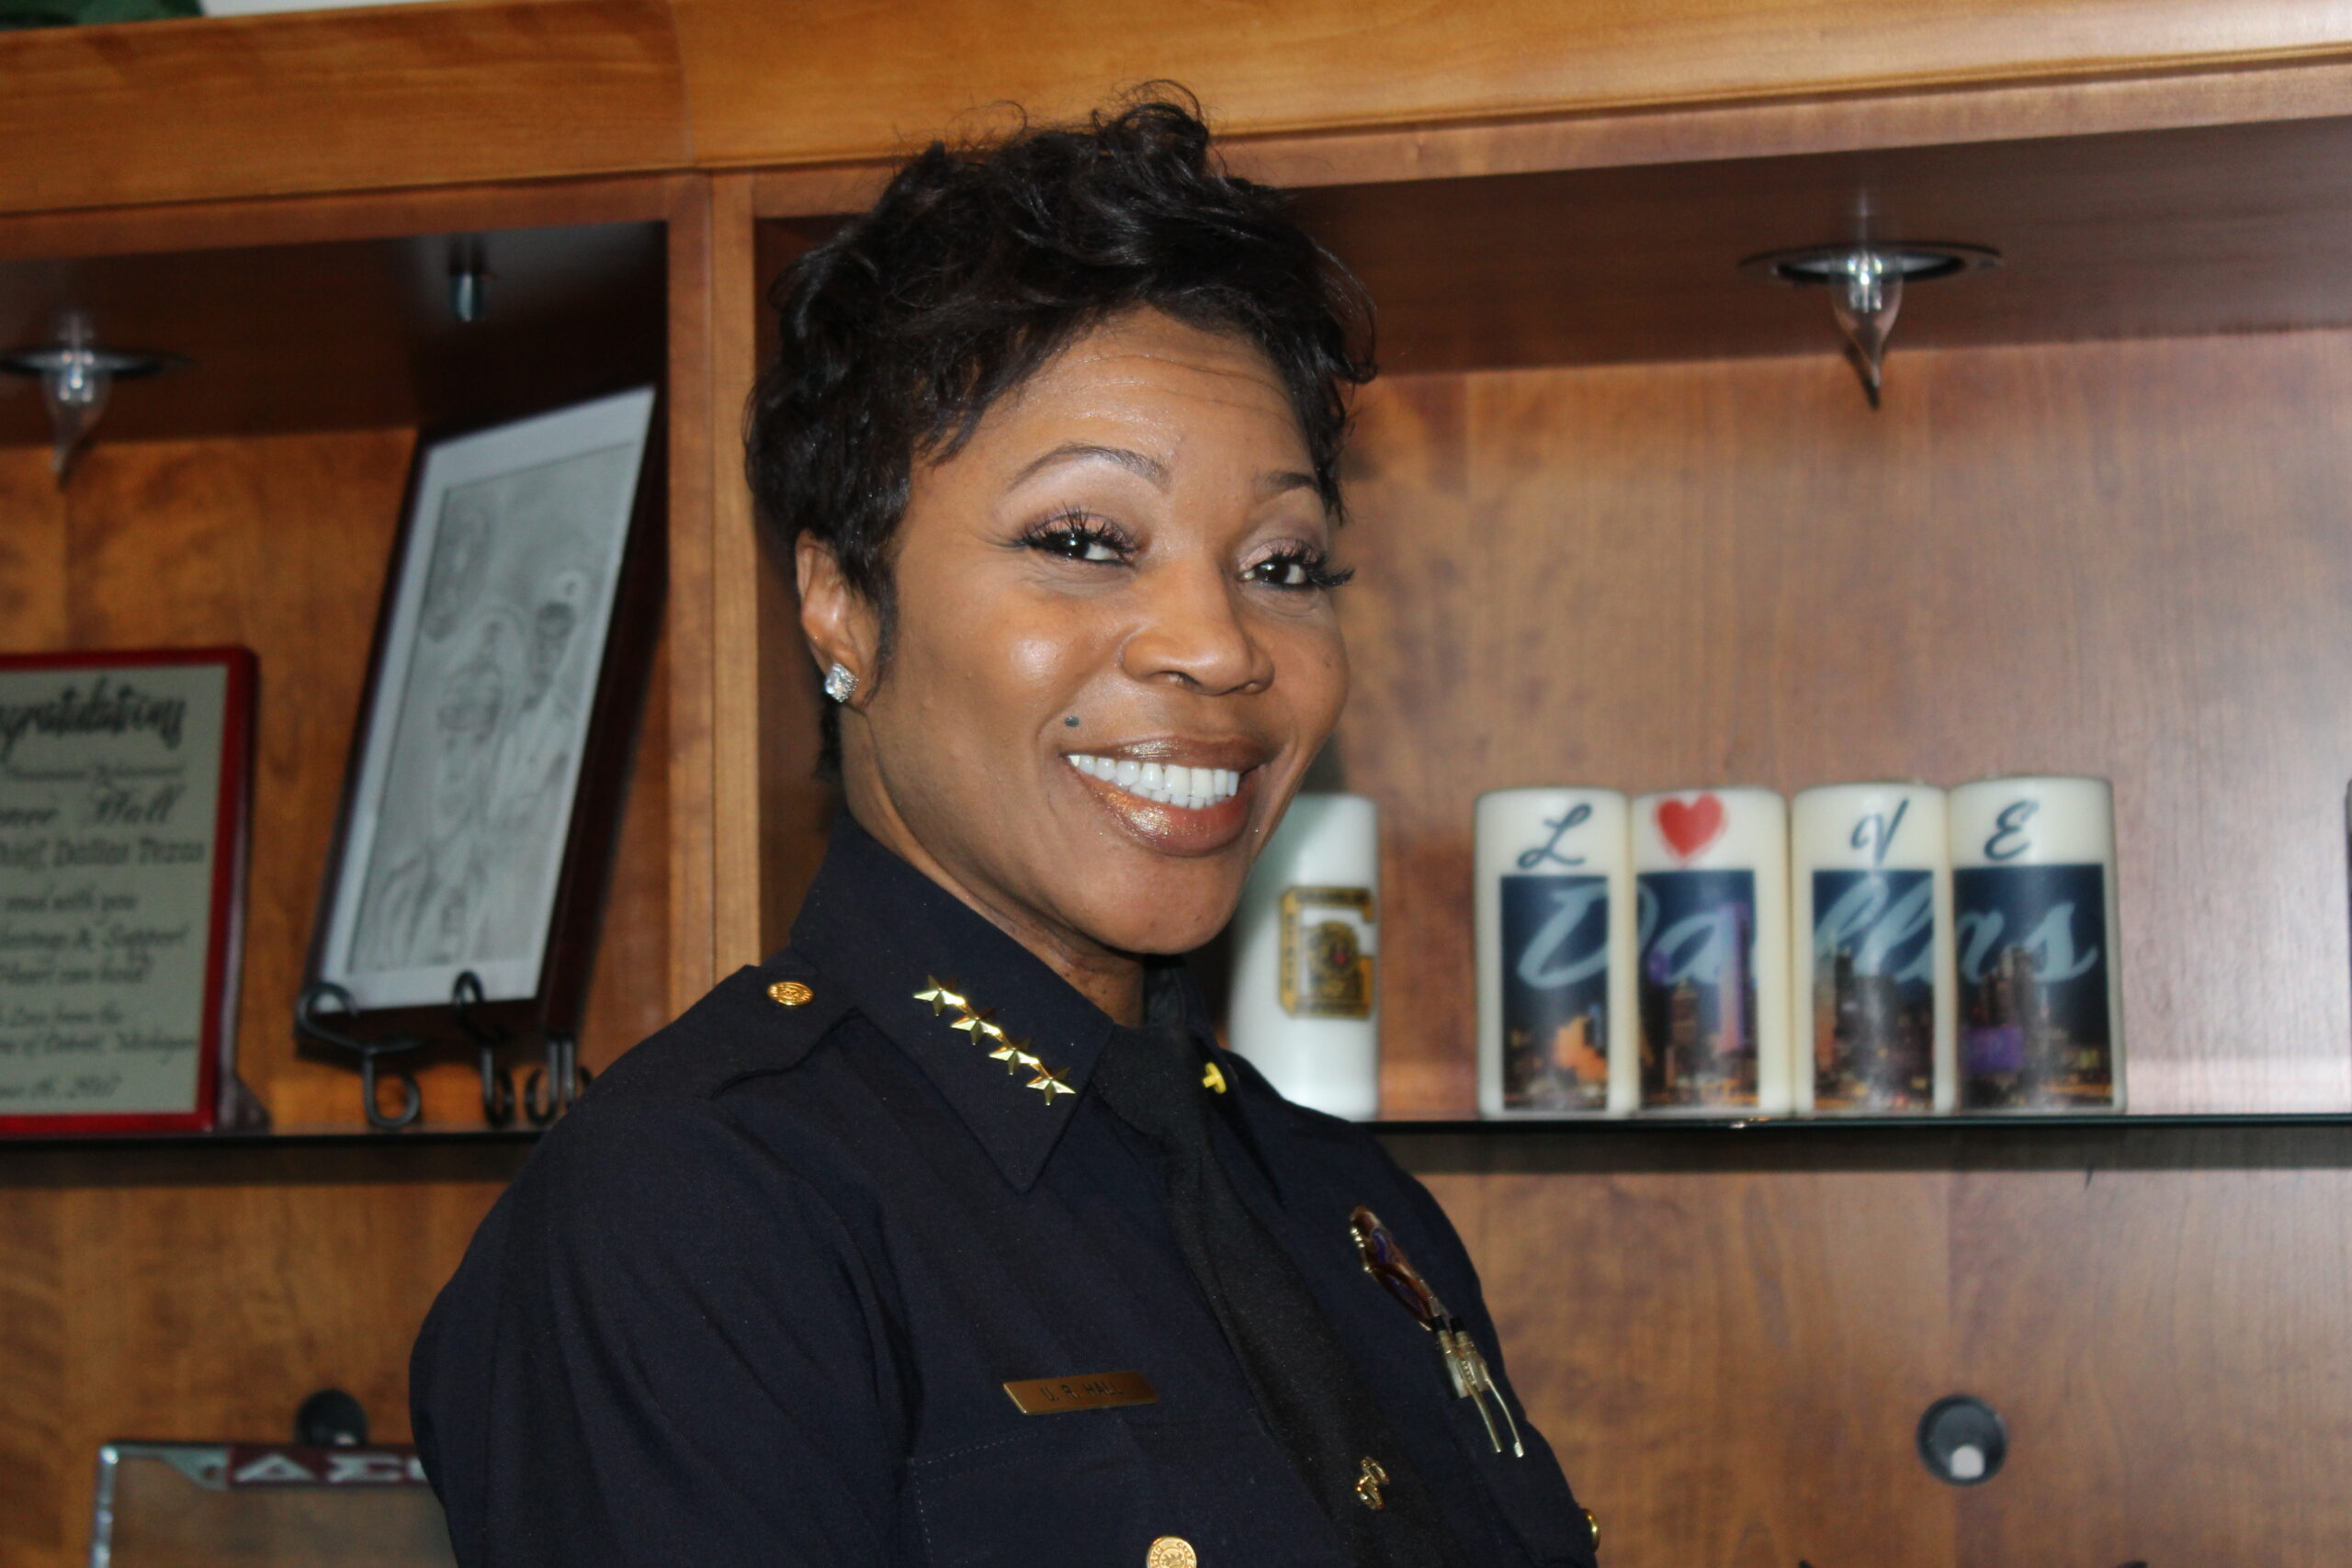 Dallas Police Chief U. Reneé Hall/ Photo by Eva D. Coleman